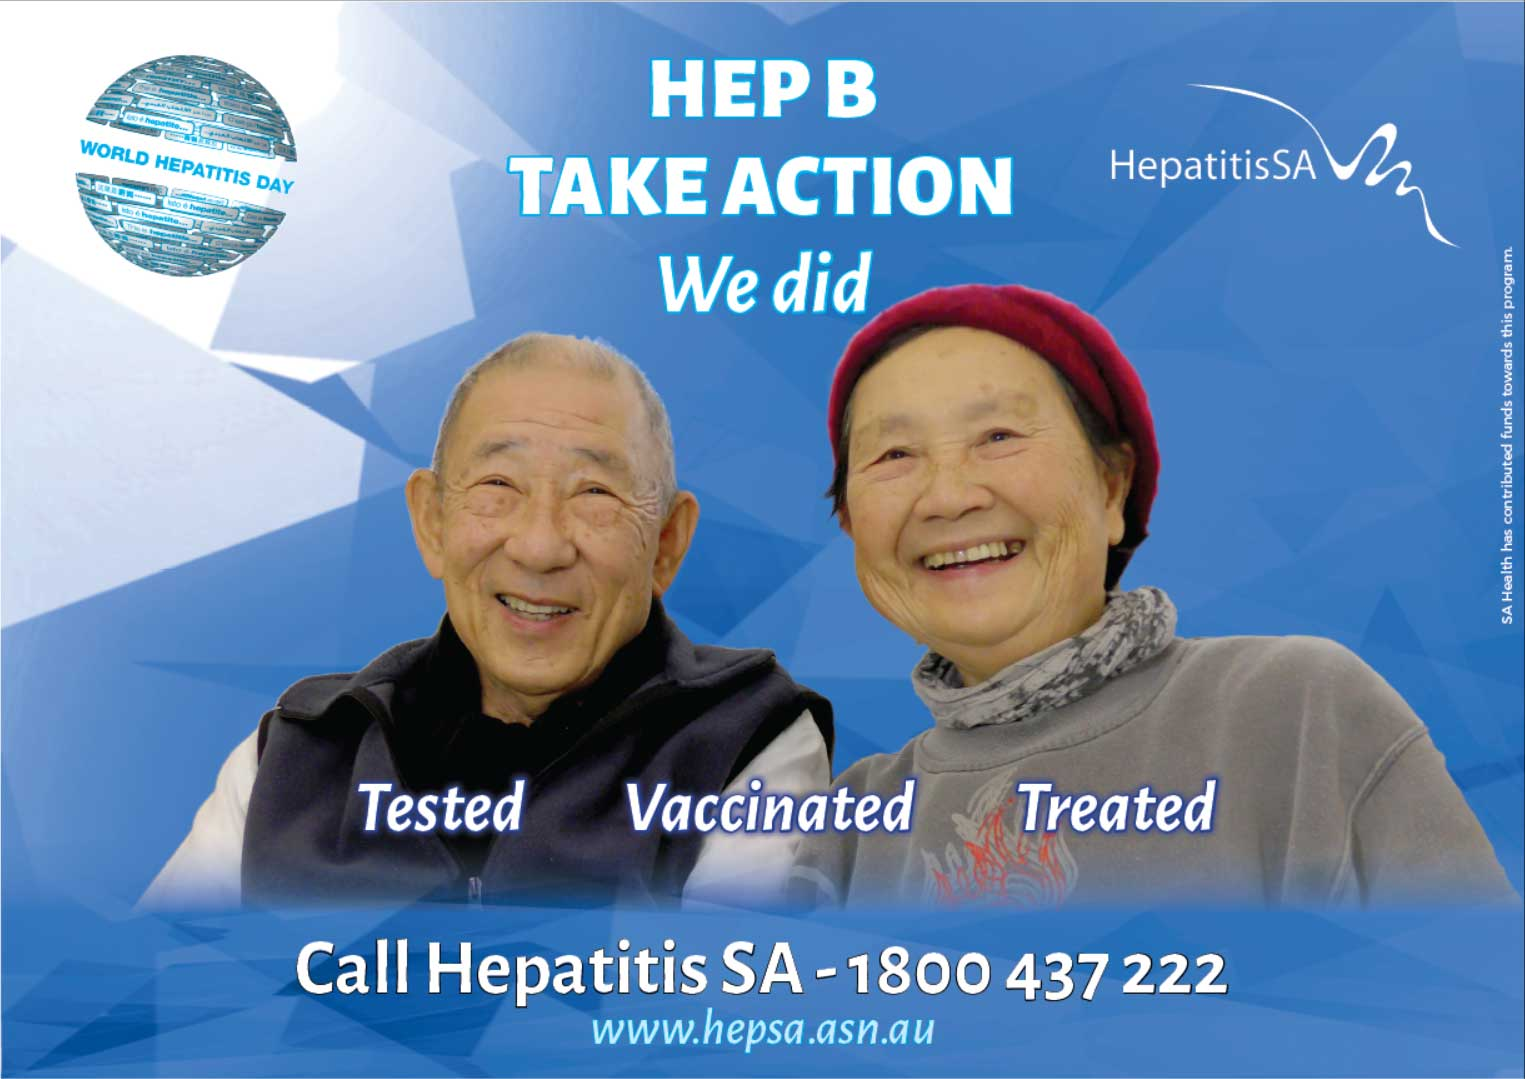 Hep B Take Action poster